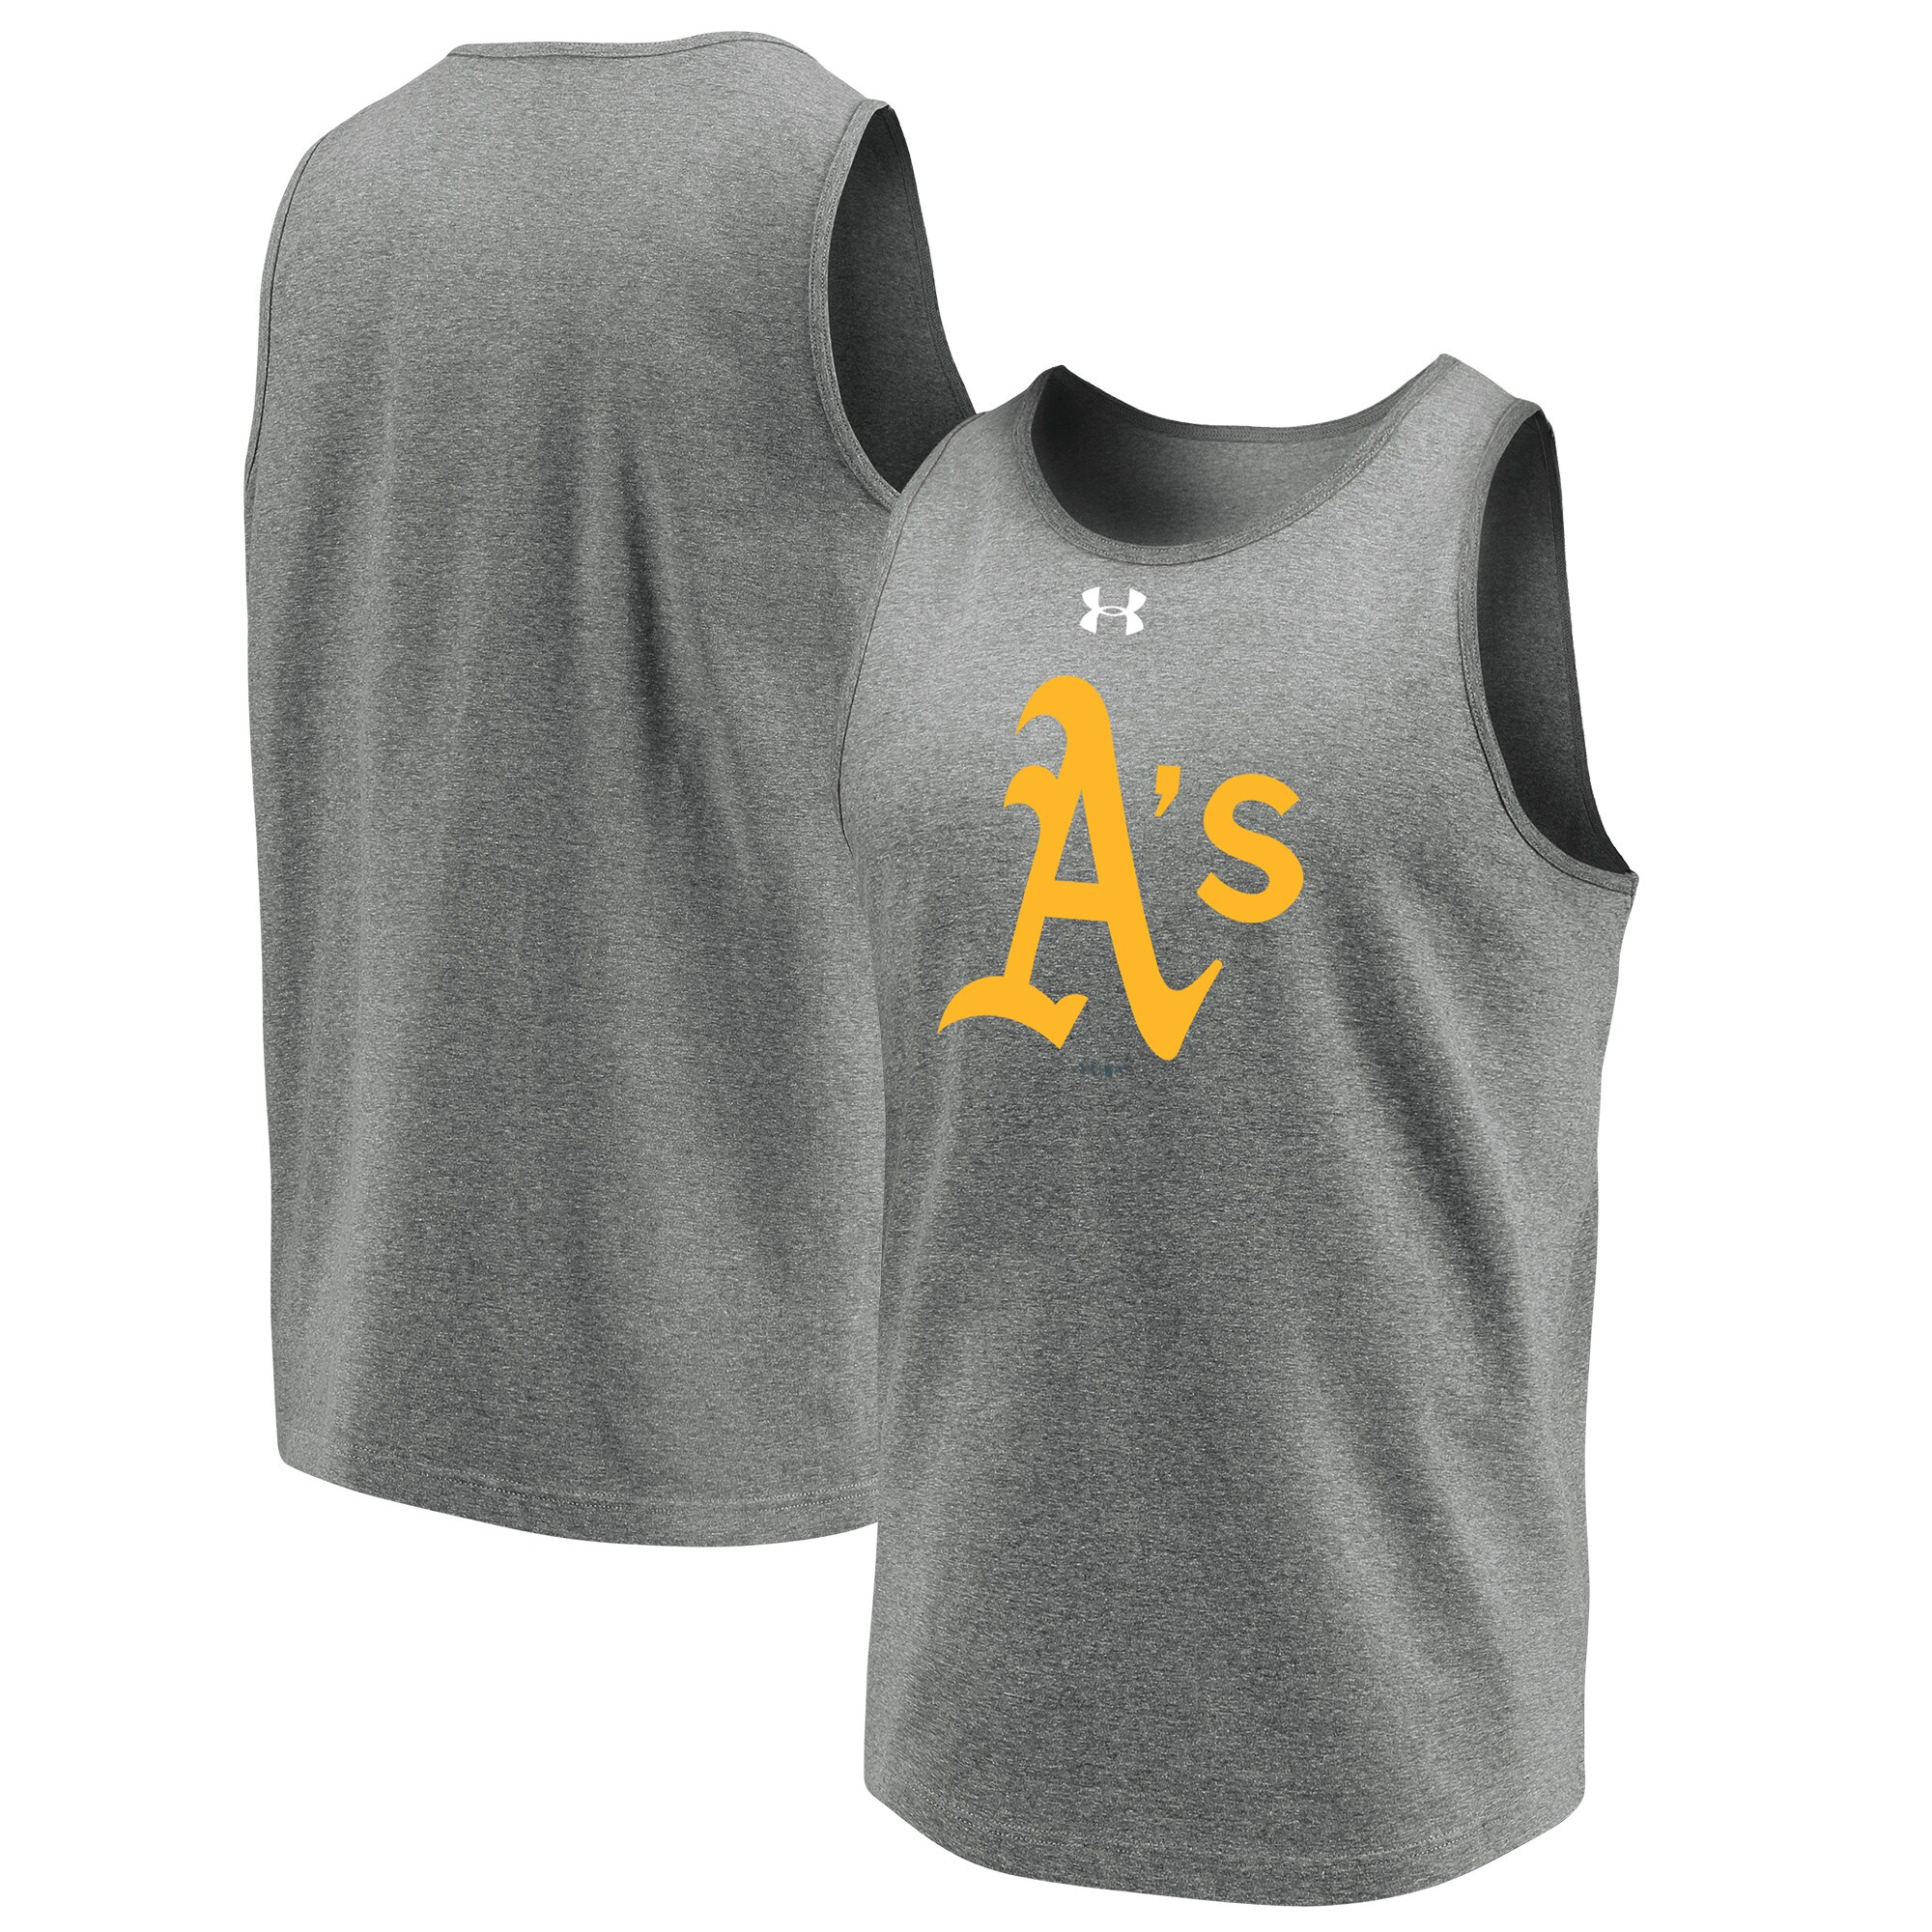 Oakland Athletics Under Armour Loyalty Team Mark Tank Top - Heathered Gray